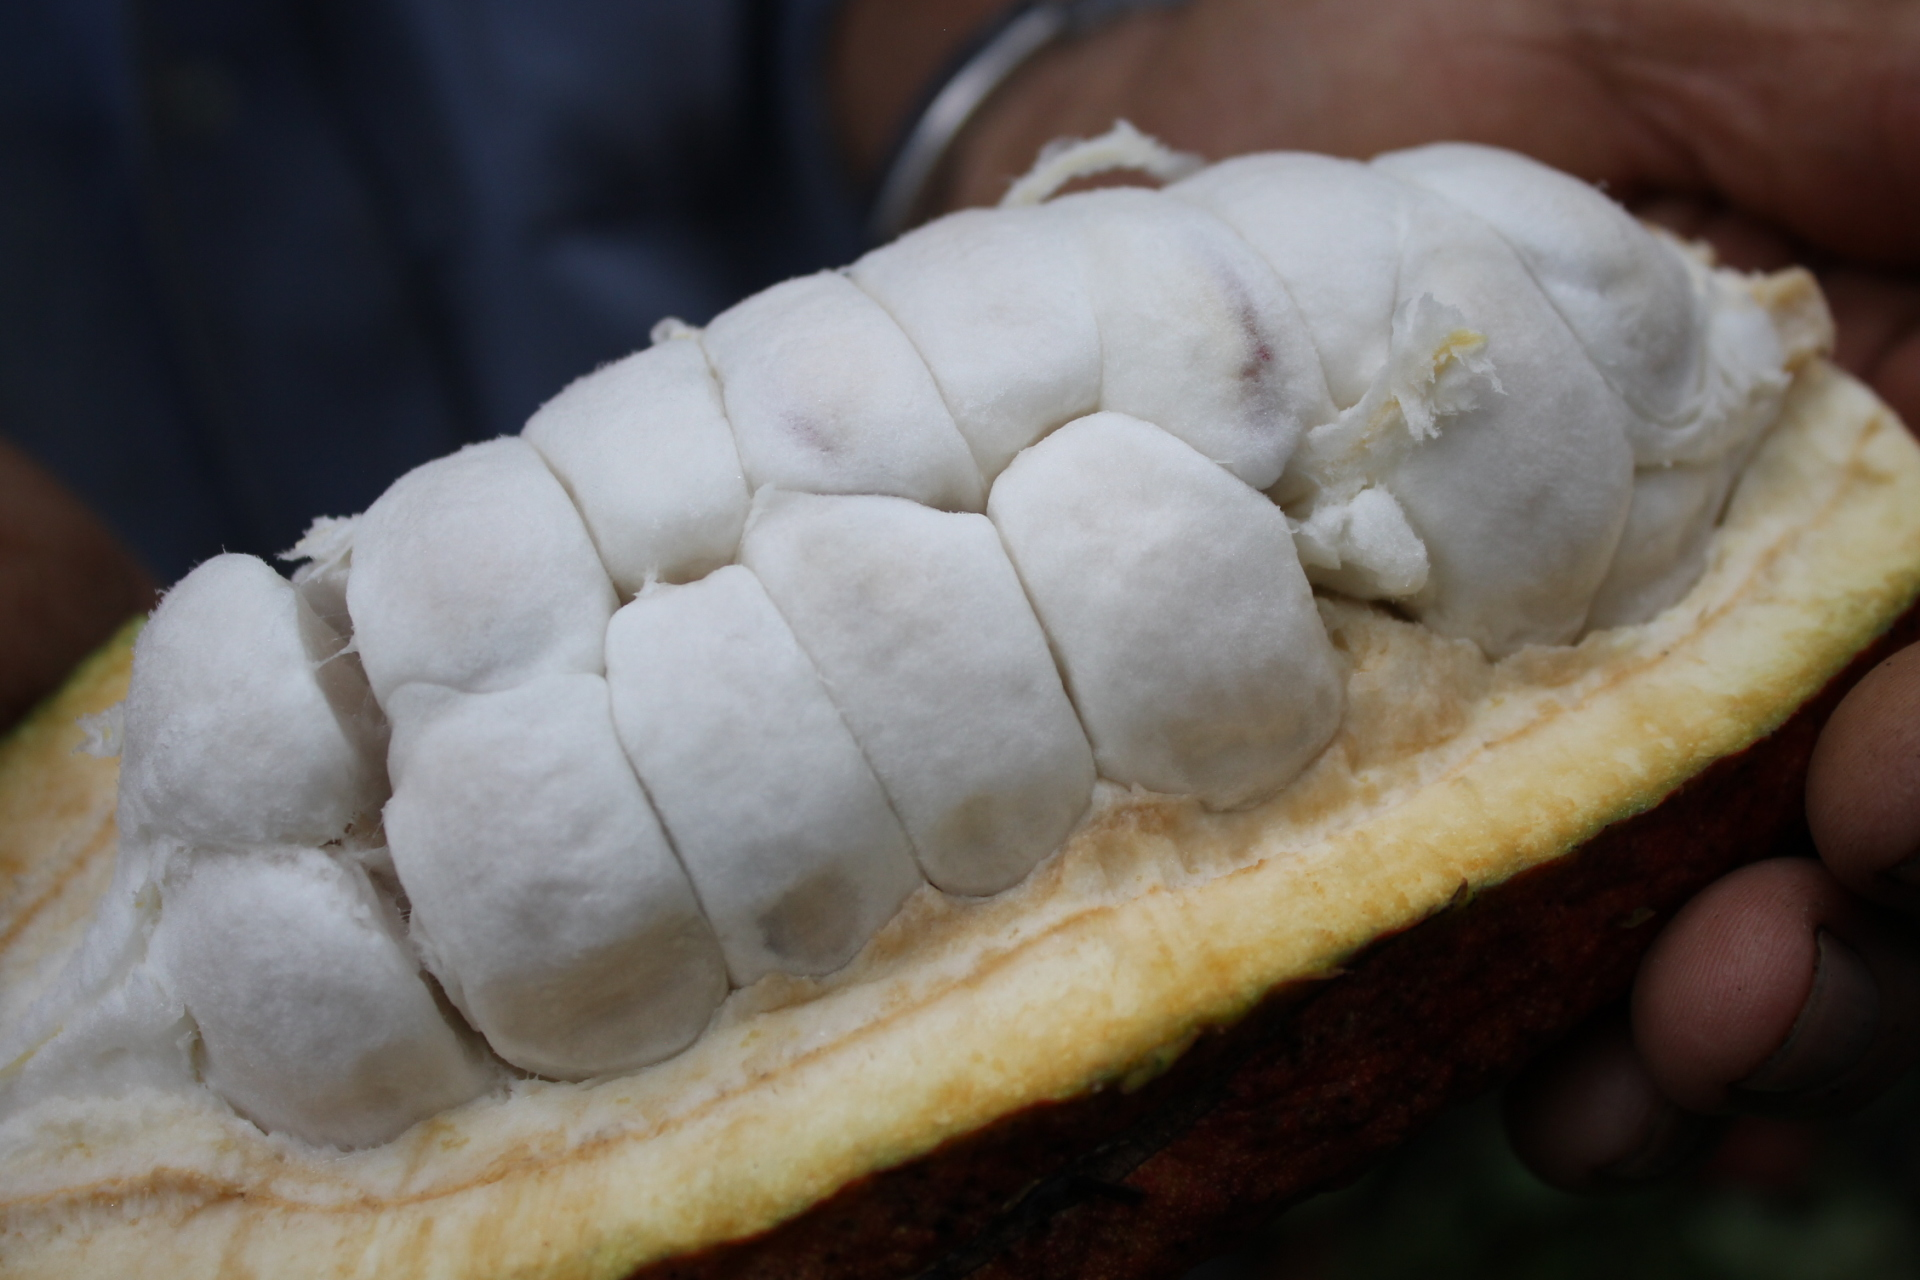 Taking the best of Colombian cacao biodiversity to the world